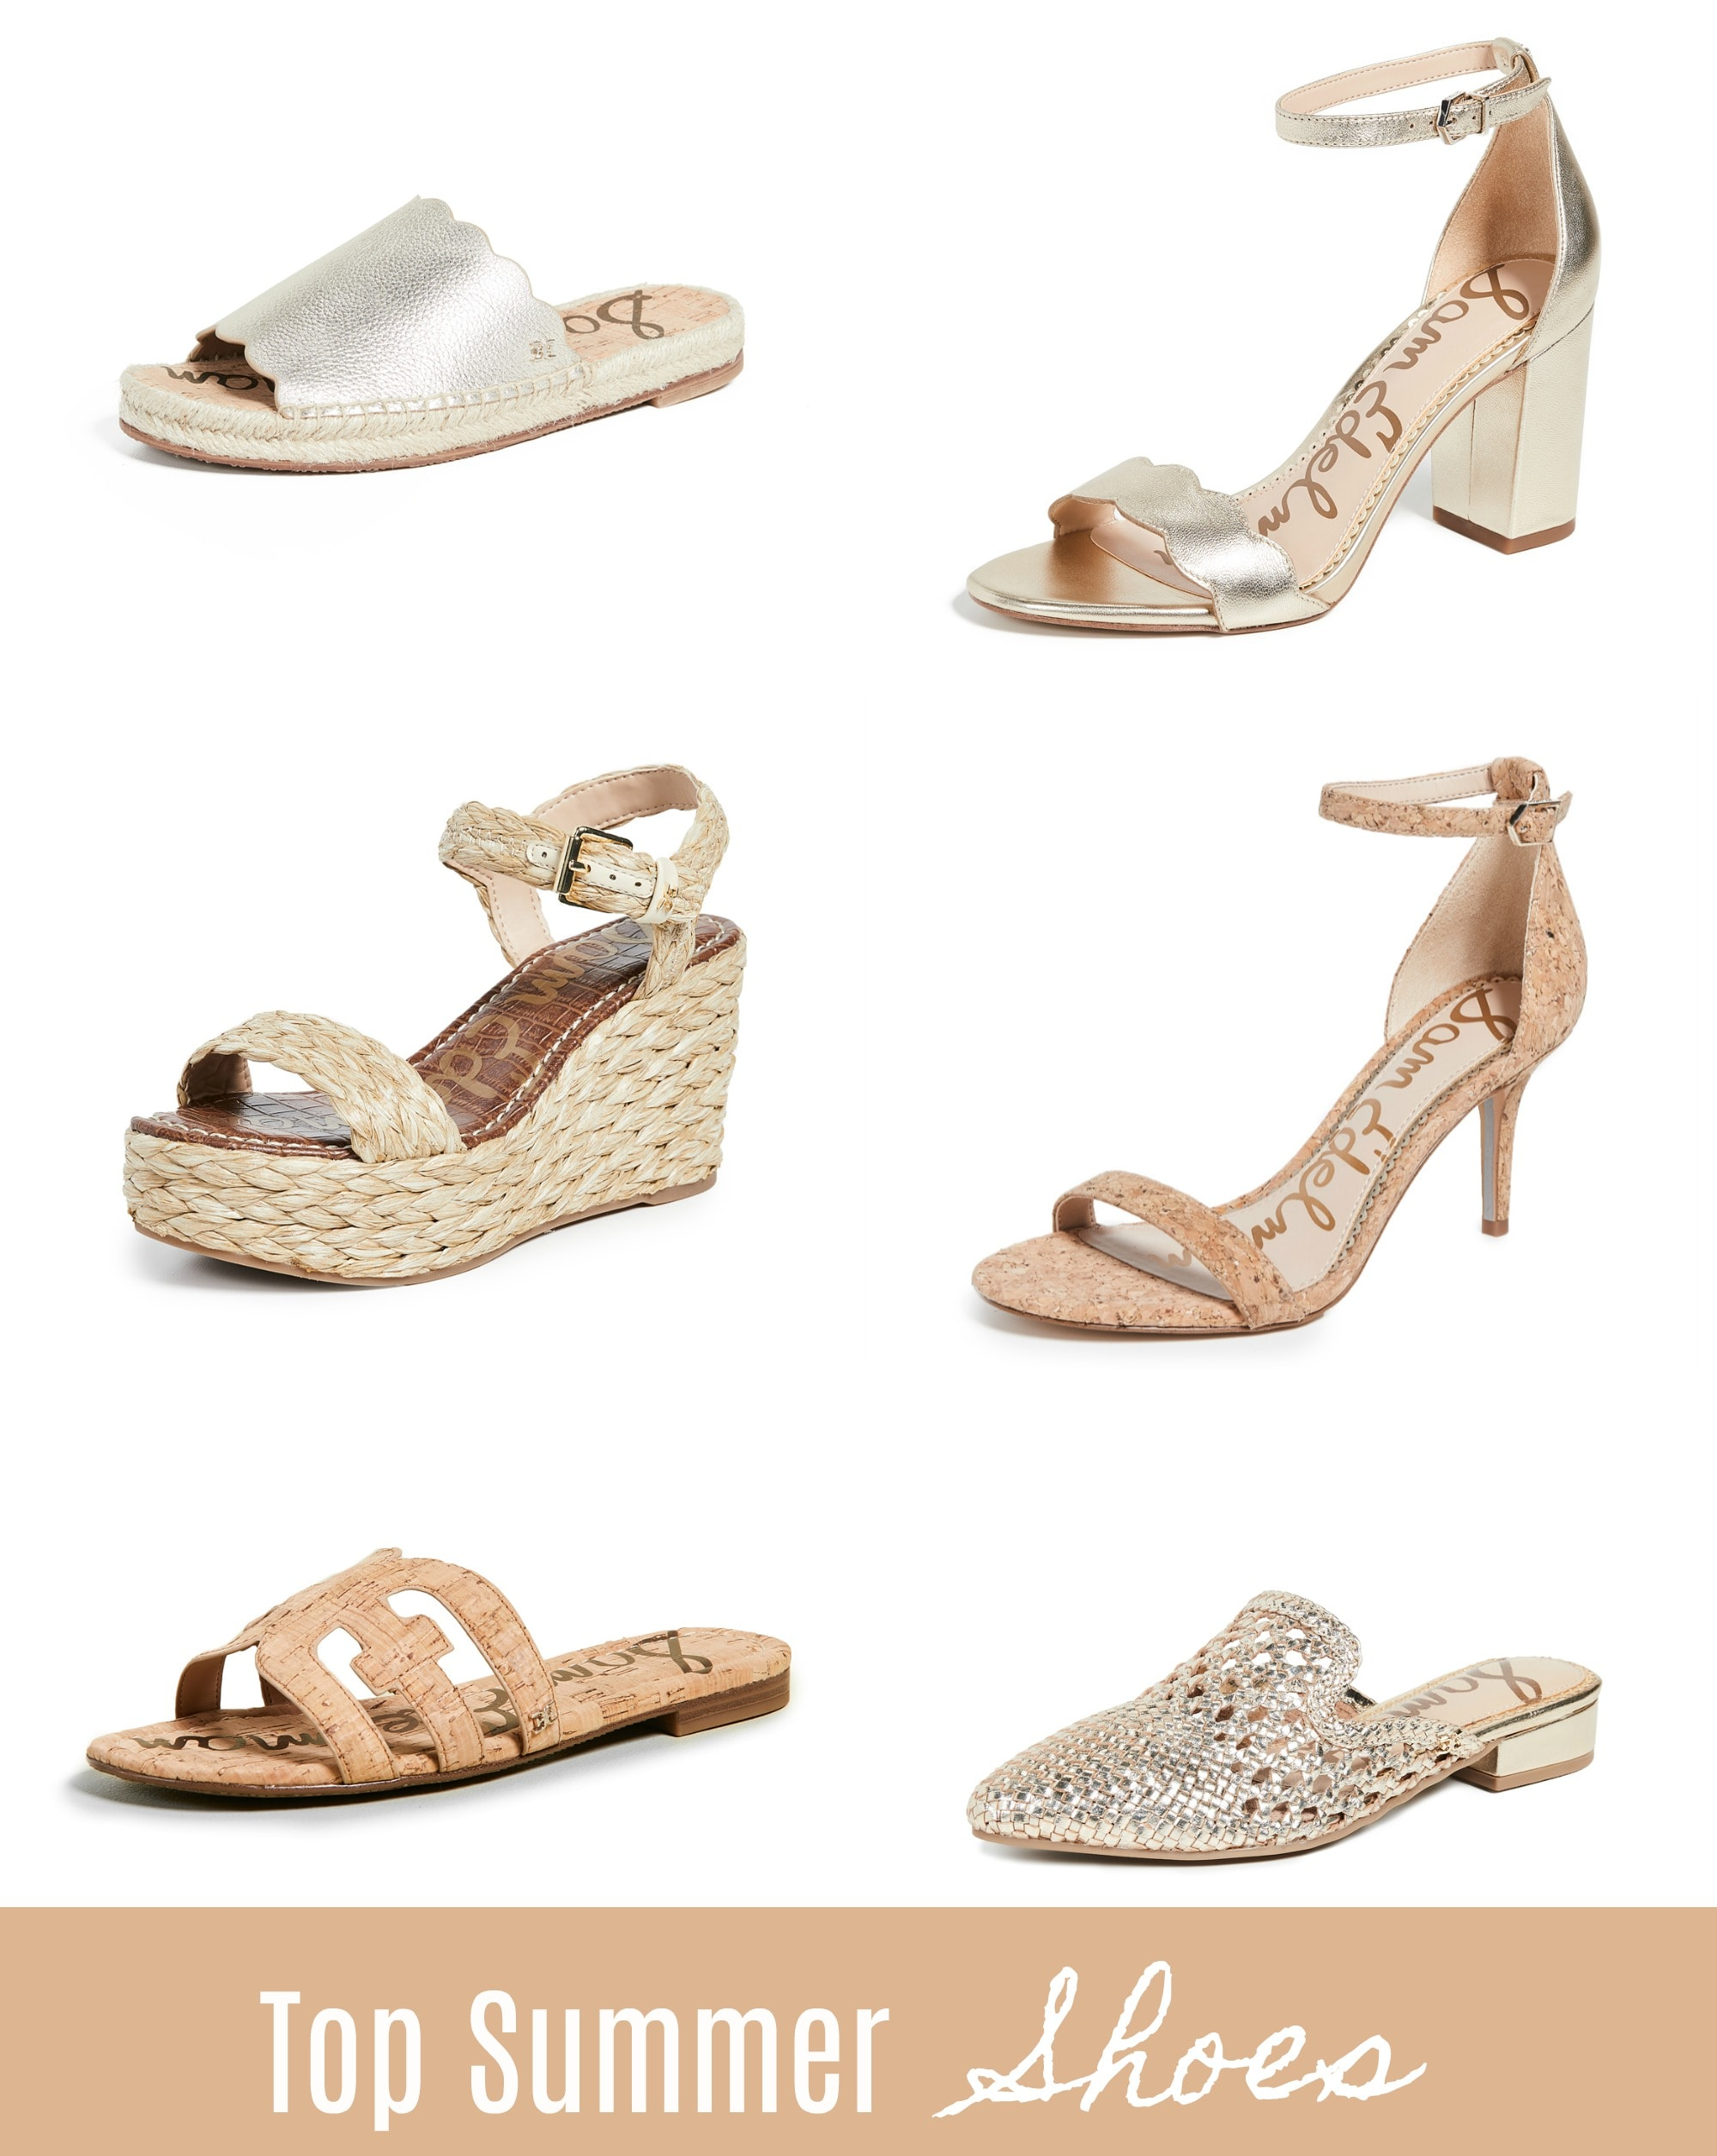 sam edelman sandals, heels and wedges for summer